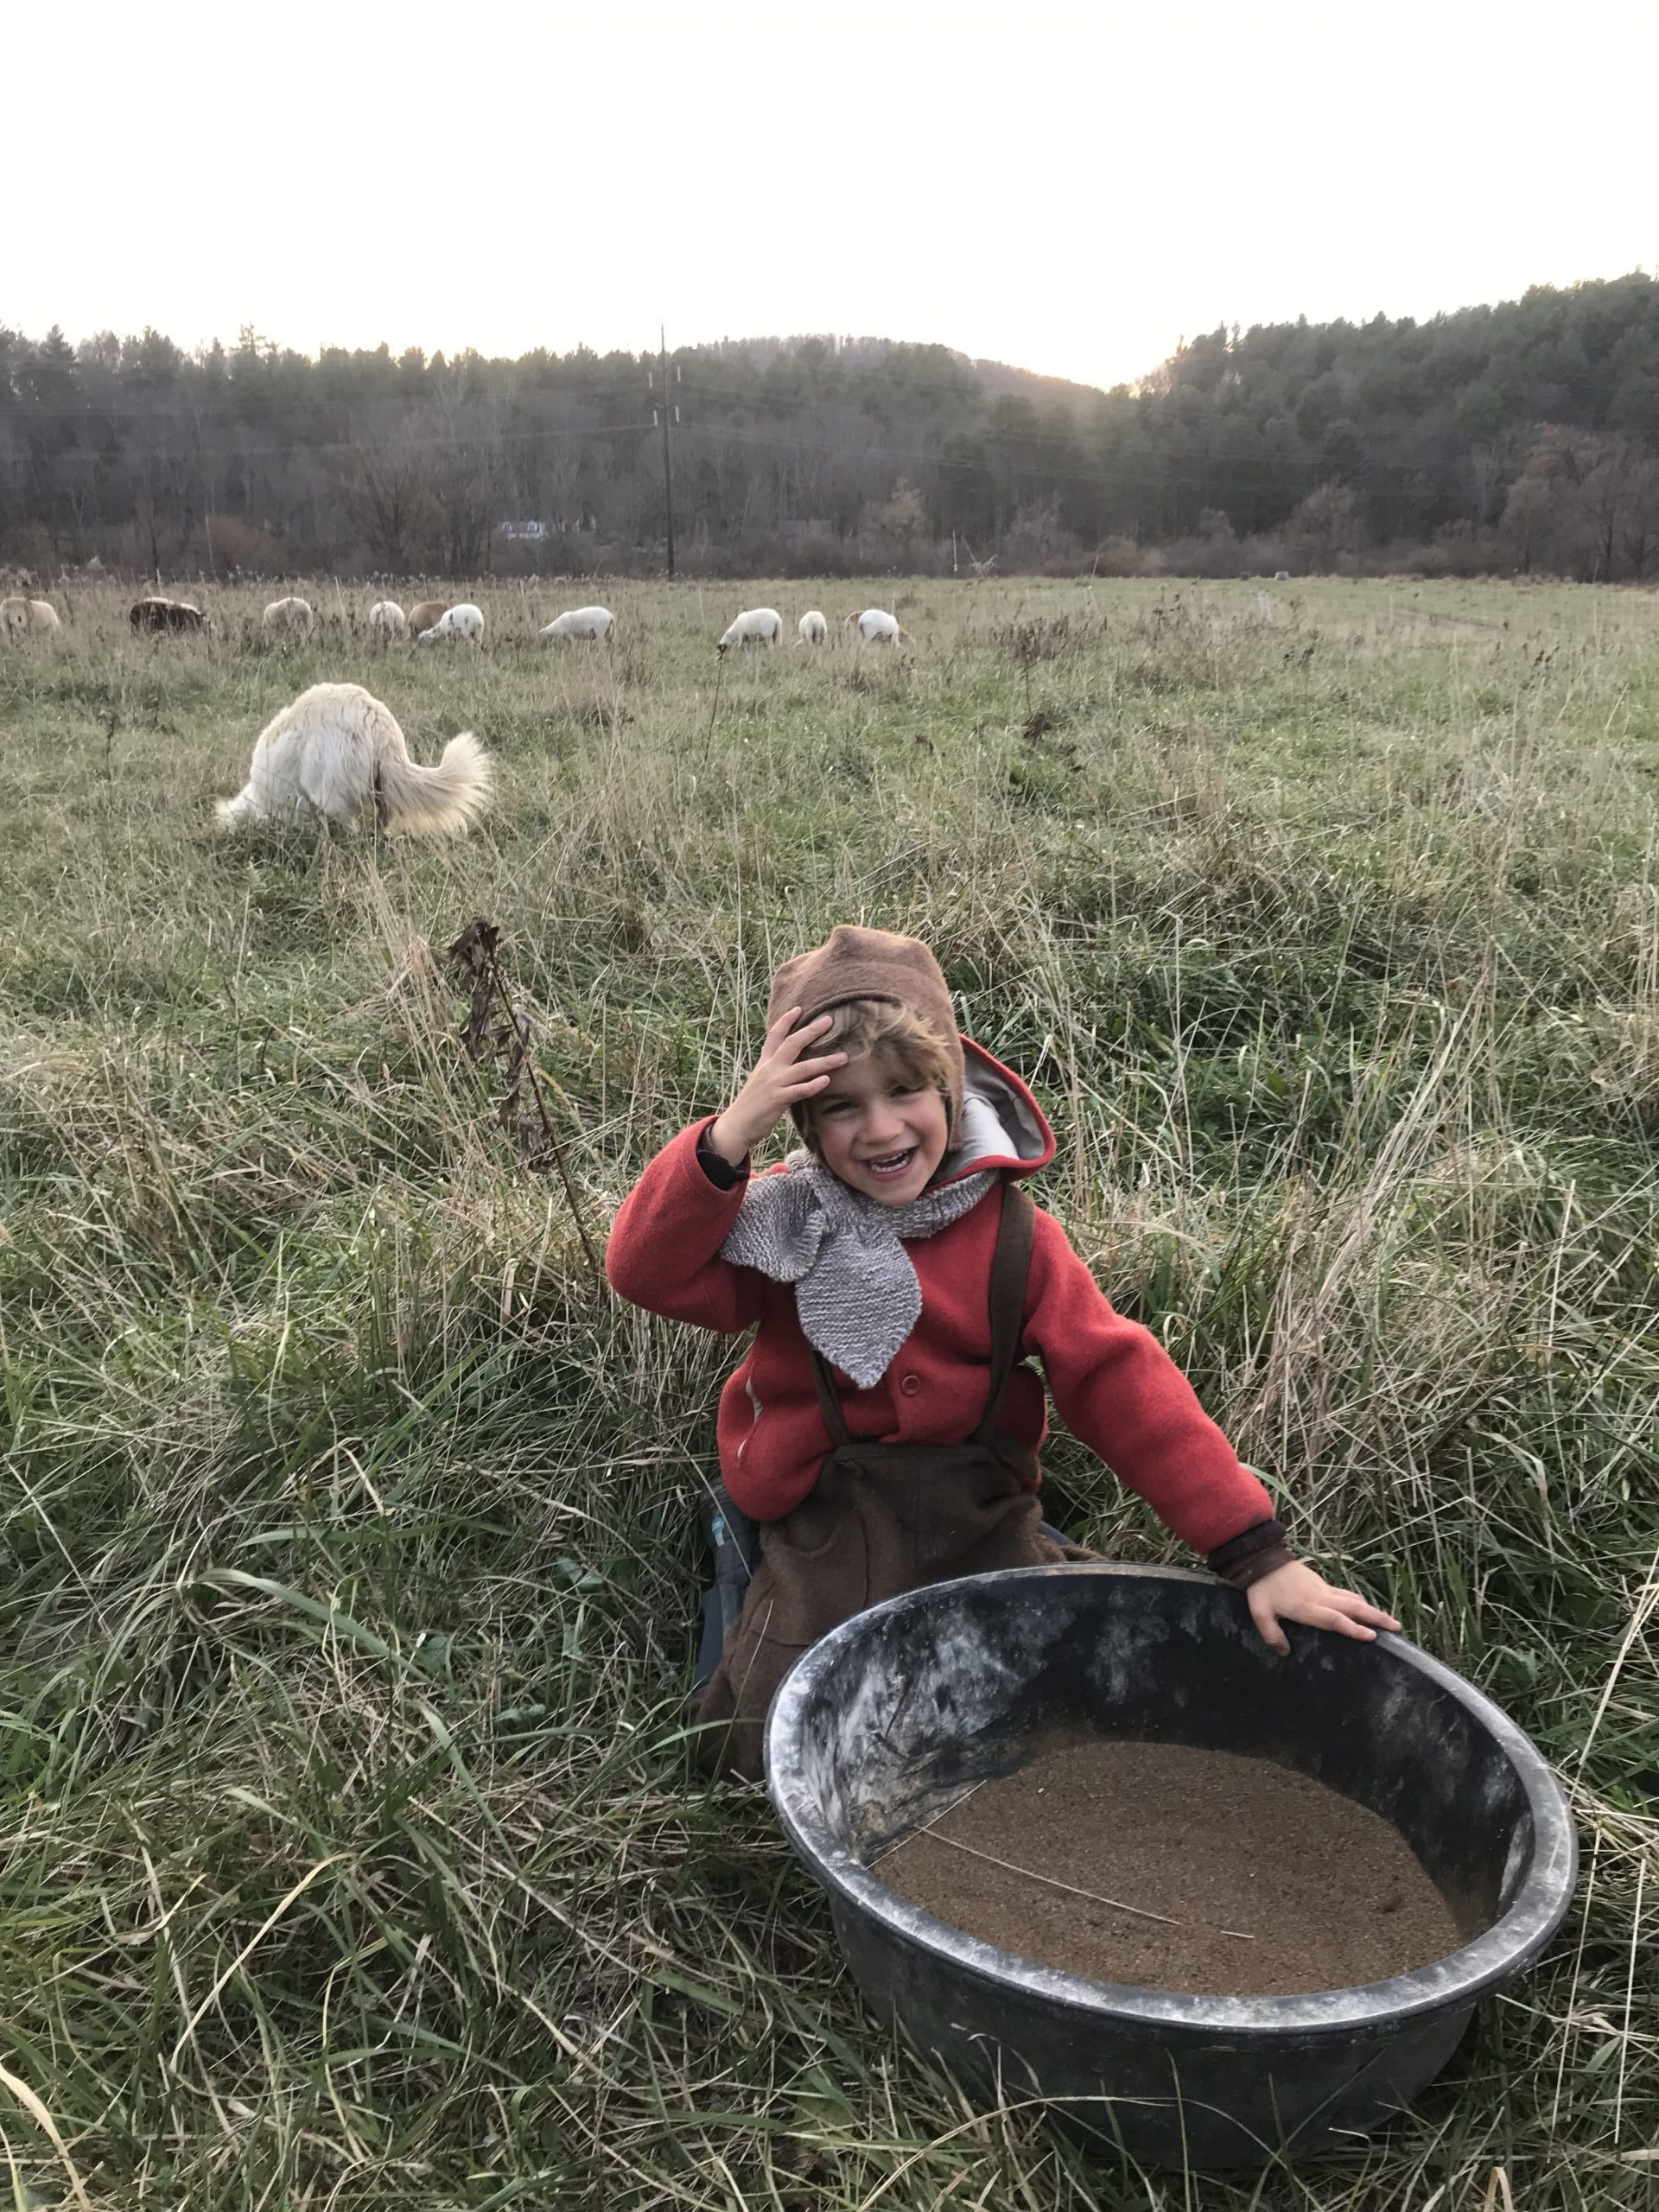 Boy feeding sheep minerals in field